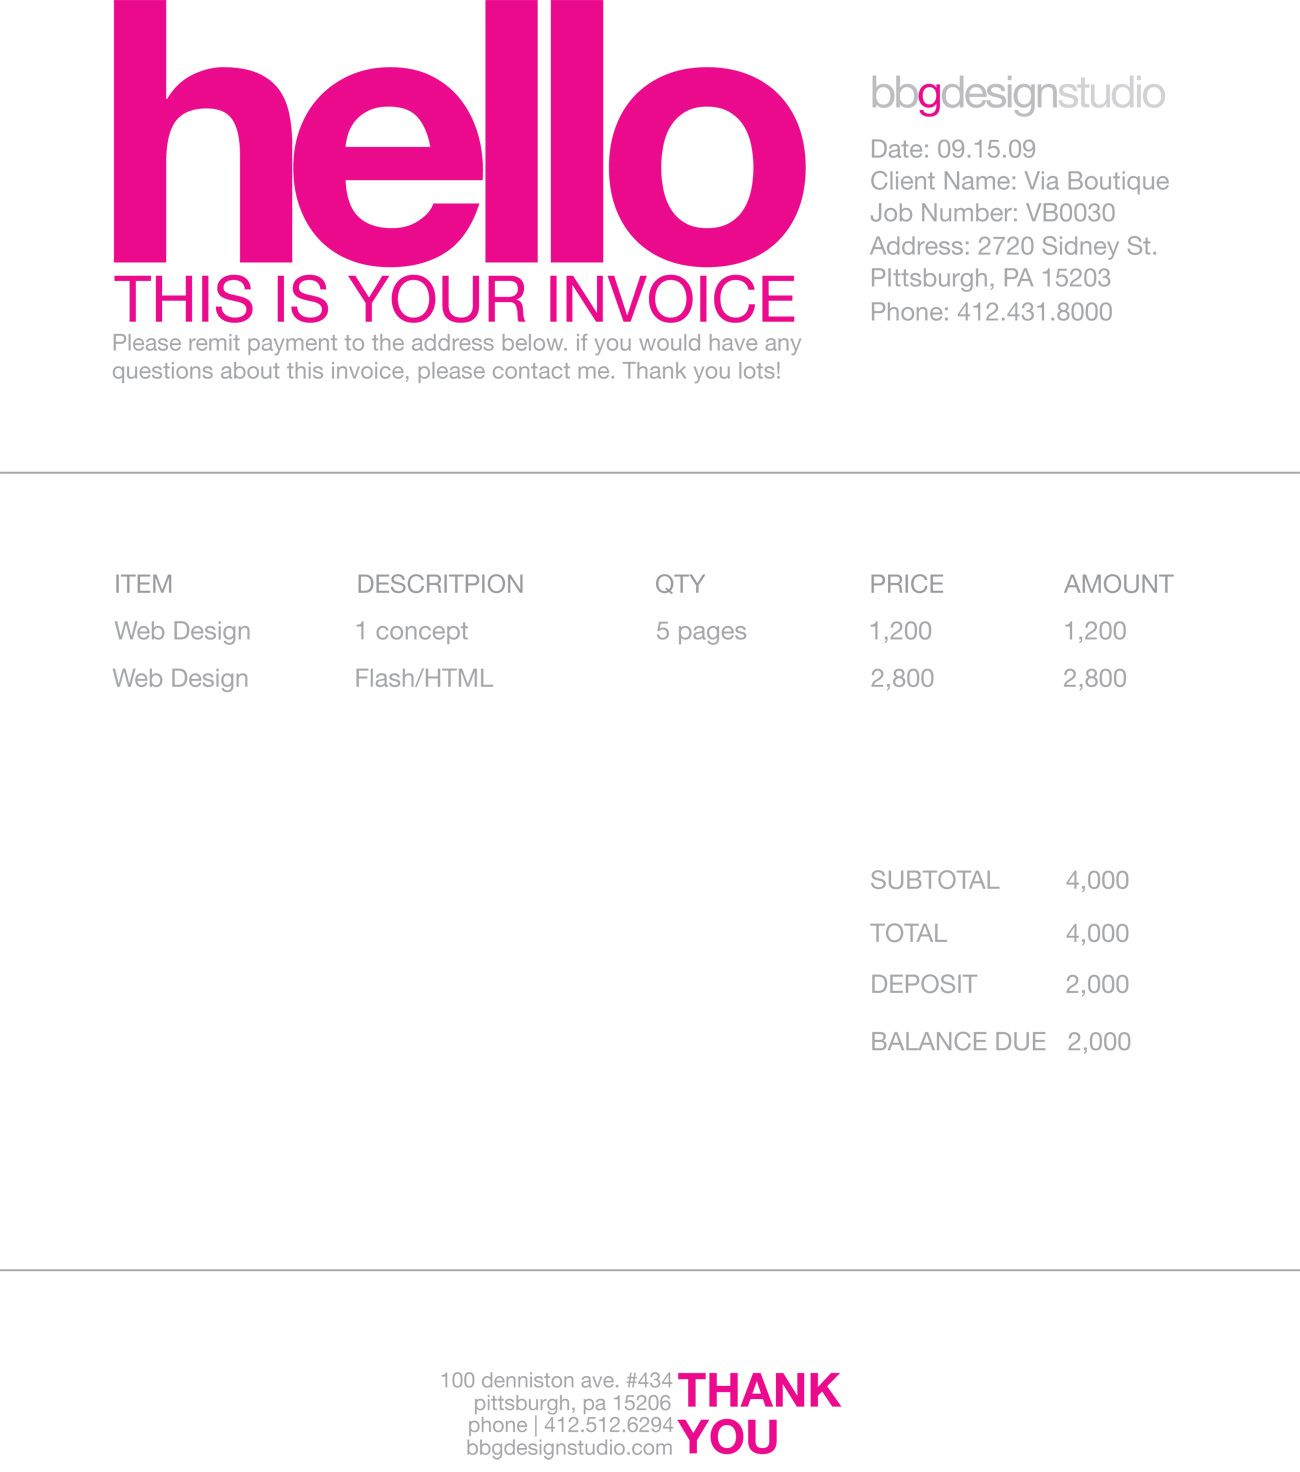 Shopdesignsus  Gorgeous  Images About Invoice Design On Pinterest With Fascinating Sample Consultant Invoice Besides Canada Custom Invoice Furthermore Sample Construction Invoice With Archaic Invoice For Also Invoice Via Paypal In Addition Invoice Template Word Mac And Invoice System For Small Business As Well As Importing Invoices Into Quickbooks Additionally Billing And Invoicing From Pinterestcom With Shopdesignsus  Fascinating  Images About Invoice Design On Pinterest With Archaic Sample Consultant Invoice Besides Canada Custom Invoice Furthermore Sample Construction Invoice And Gorgeous Invoice For Also Invoice Via Paypal In Addition Invoice Template Word Mac From Pinterestcom